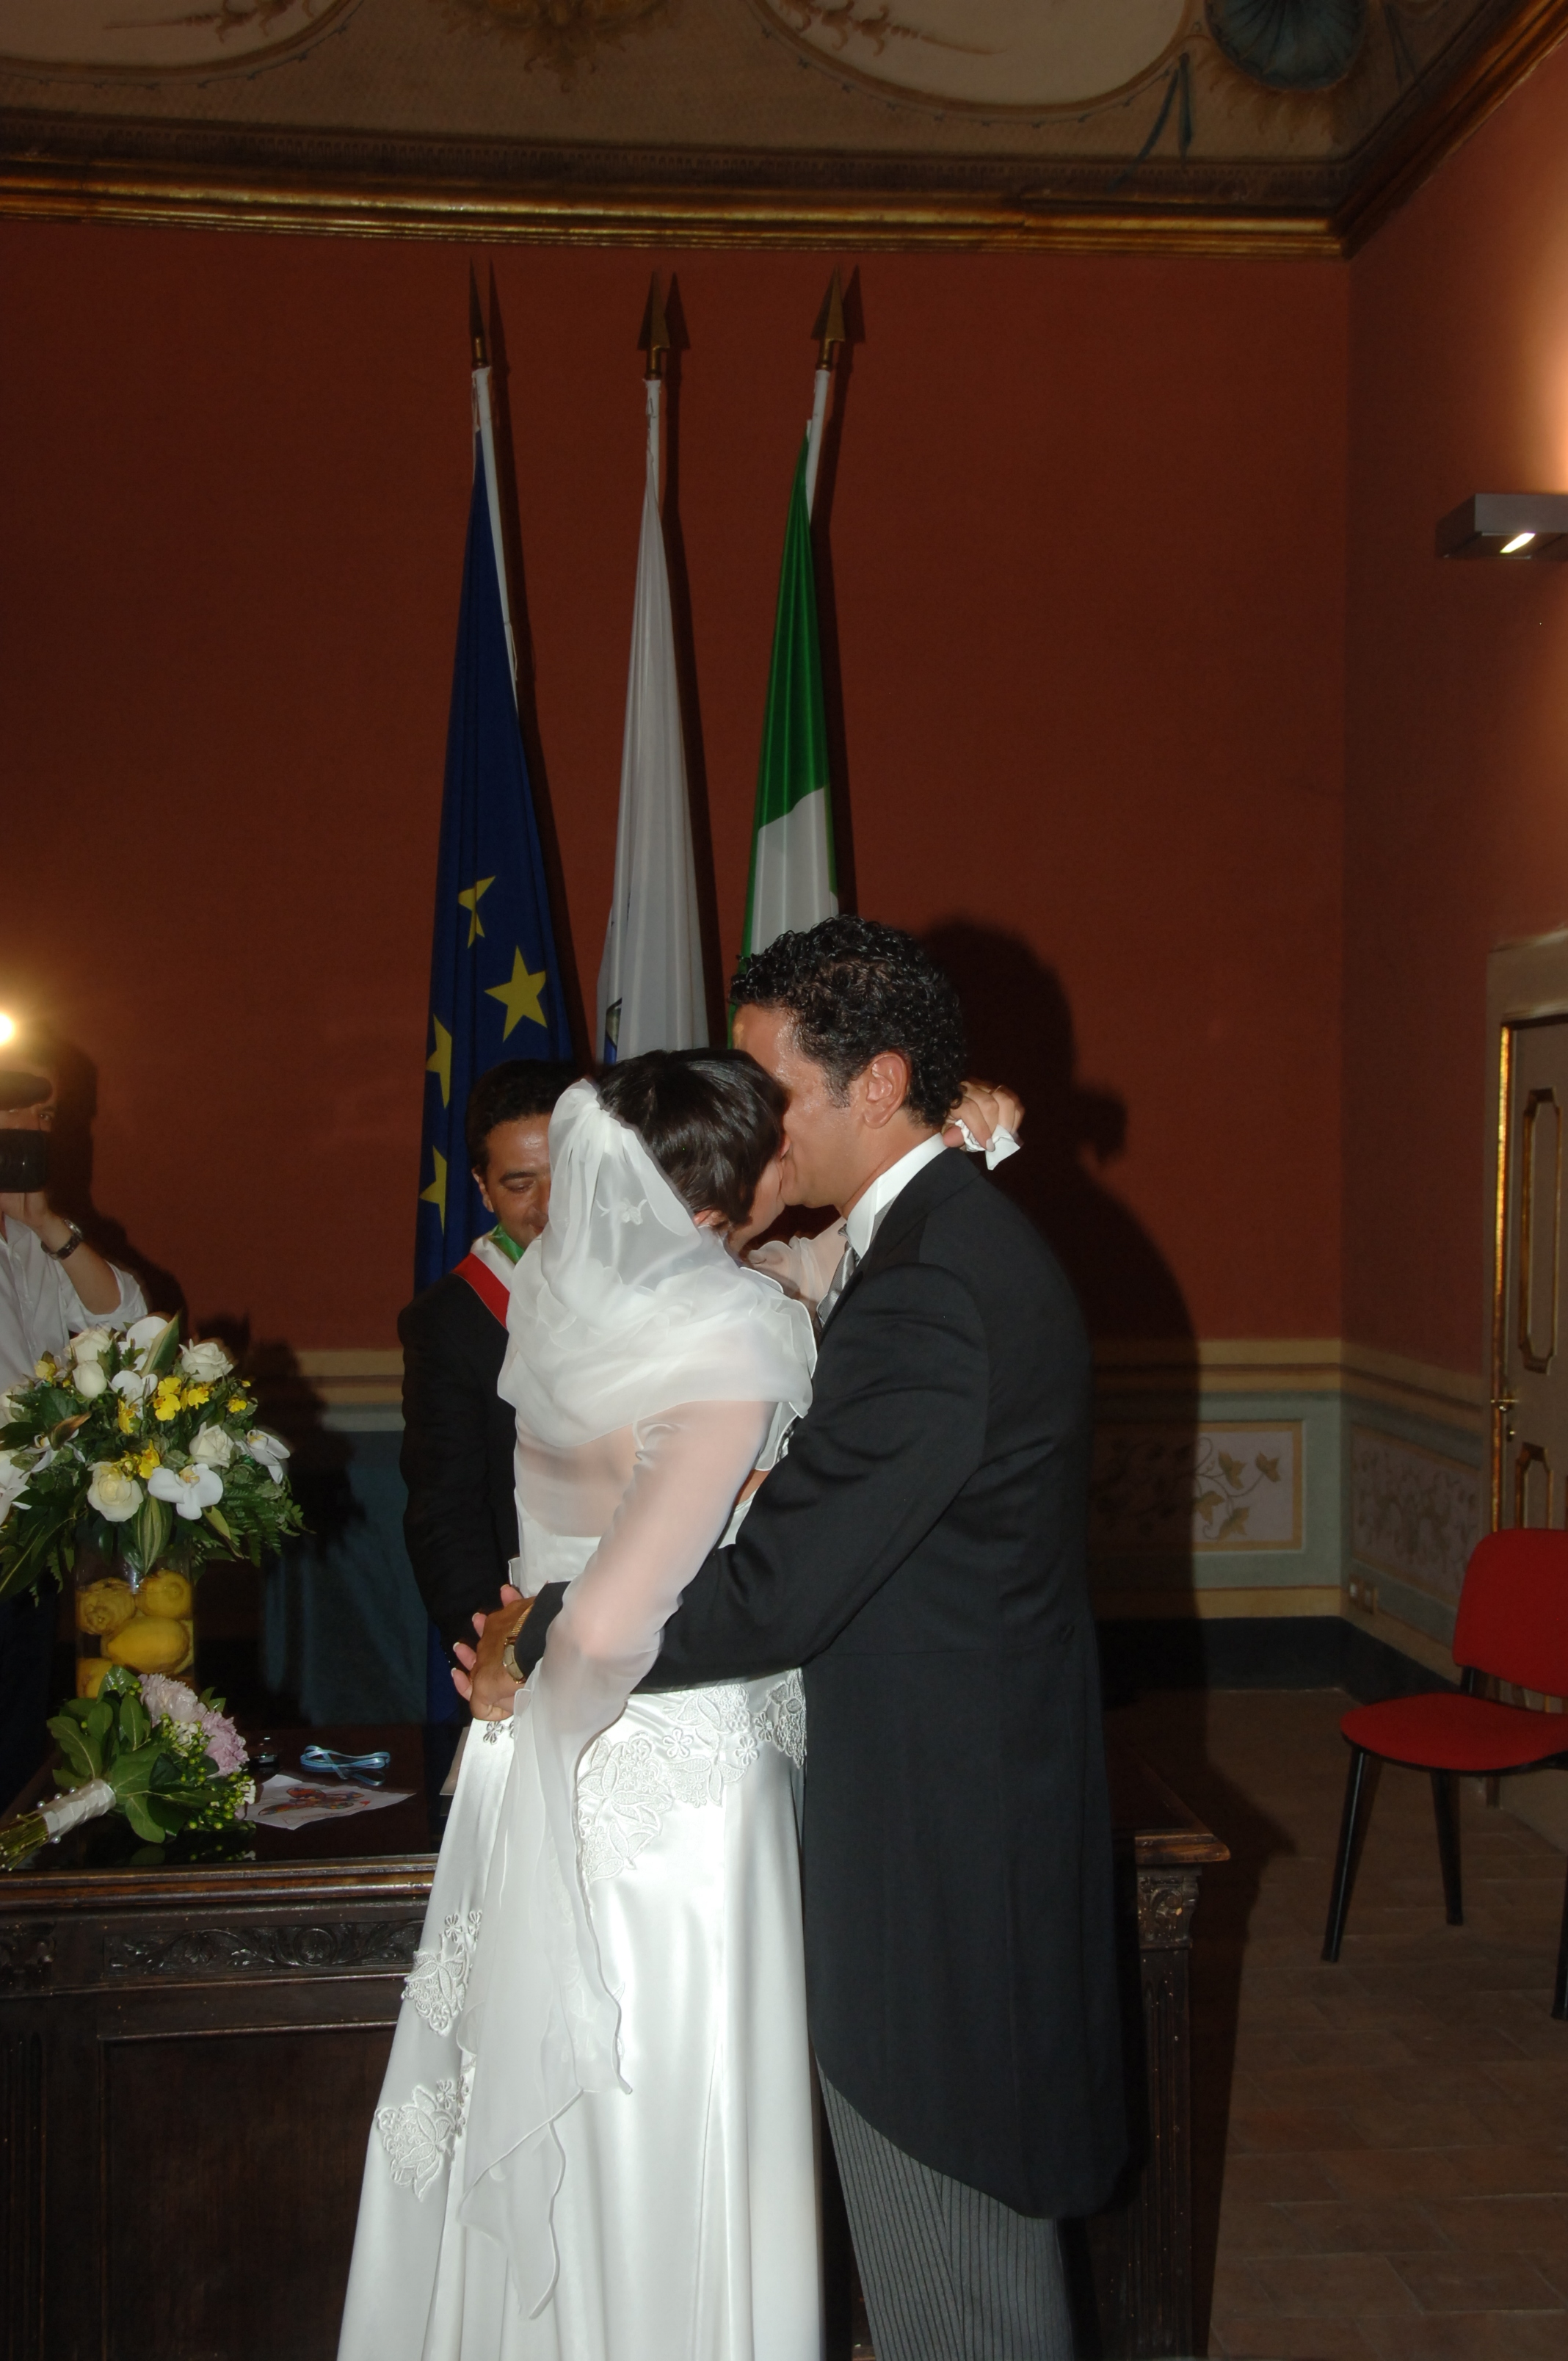 http://www.weddingamalfi.com/wp-content/uploads/Enza-and-Mario-9.jpg